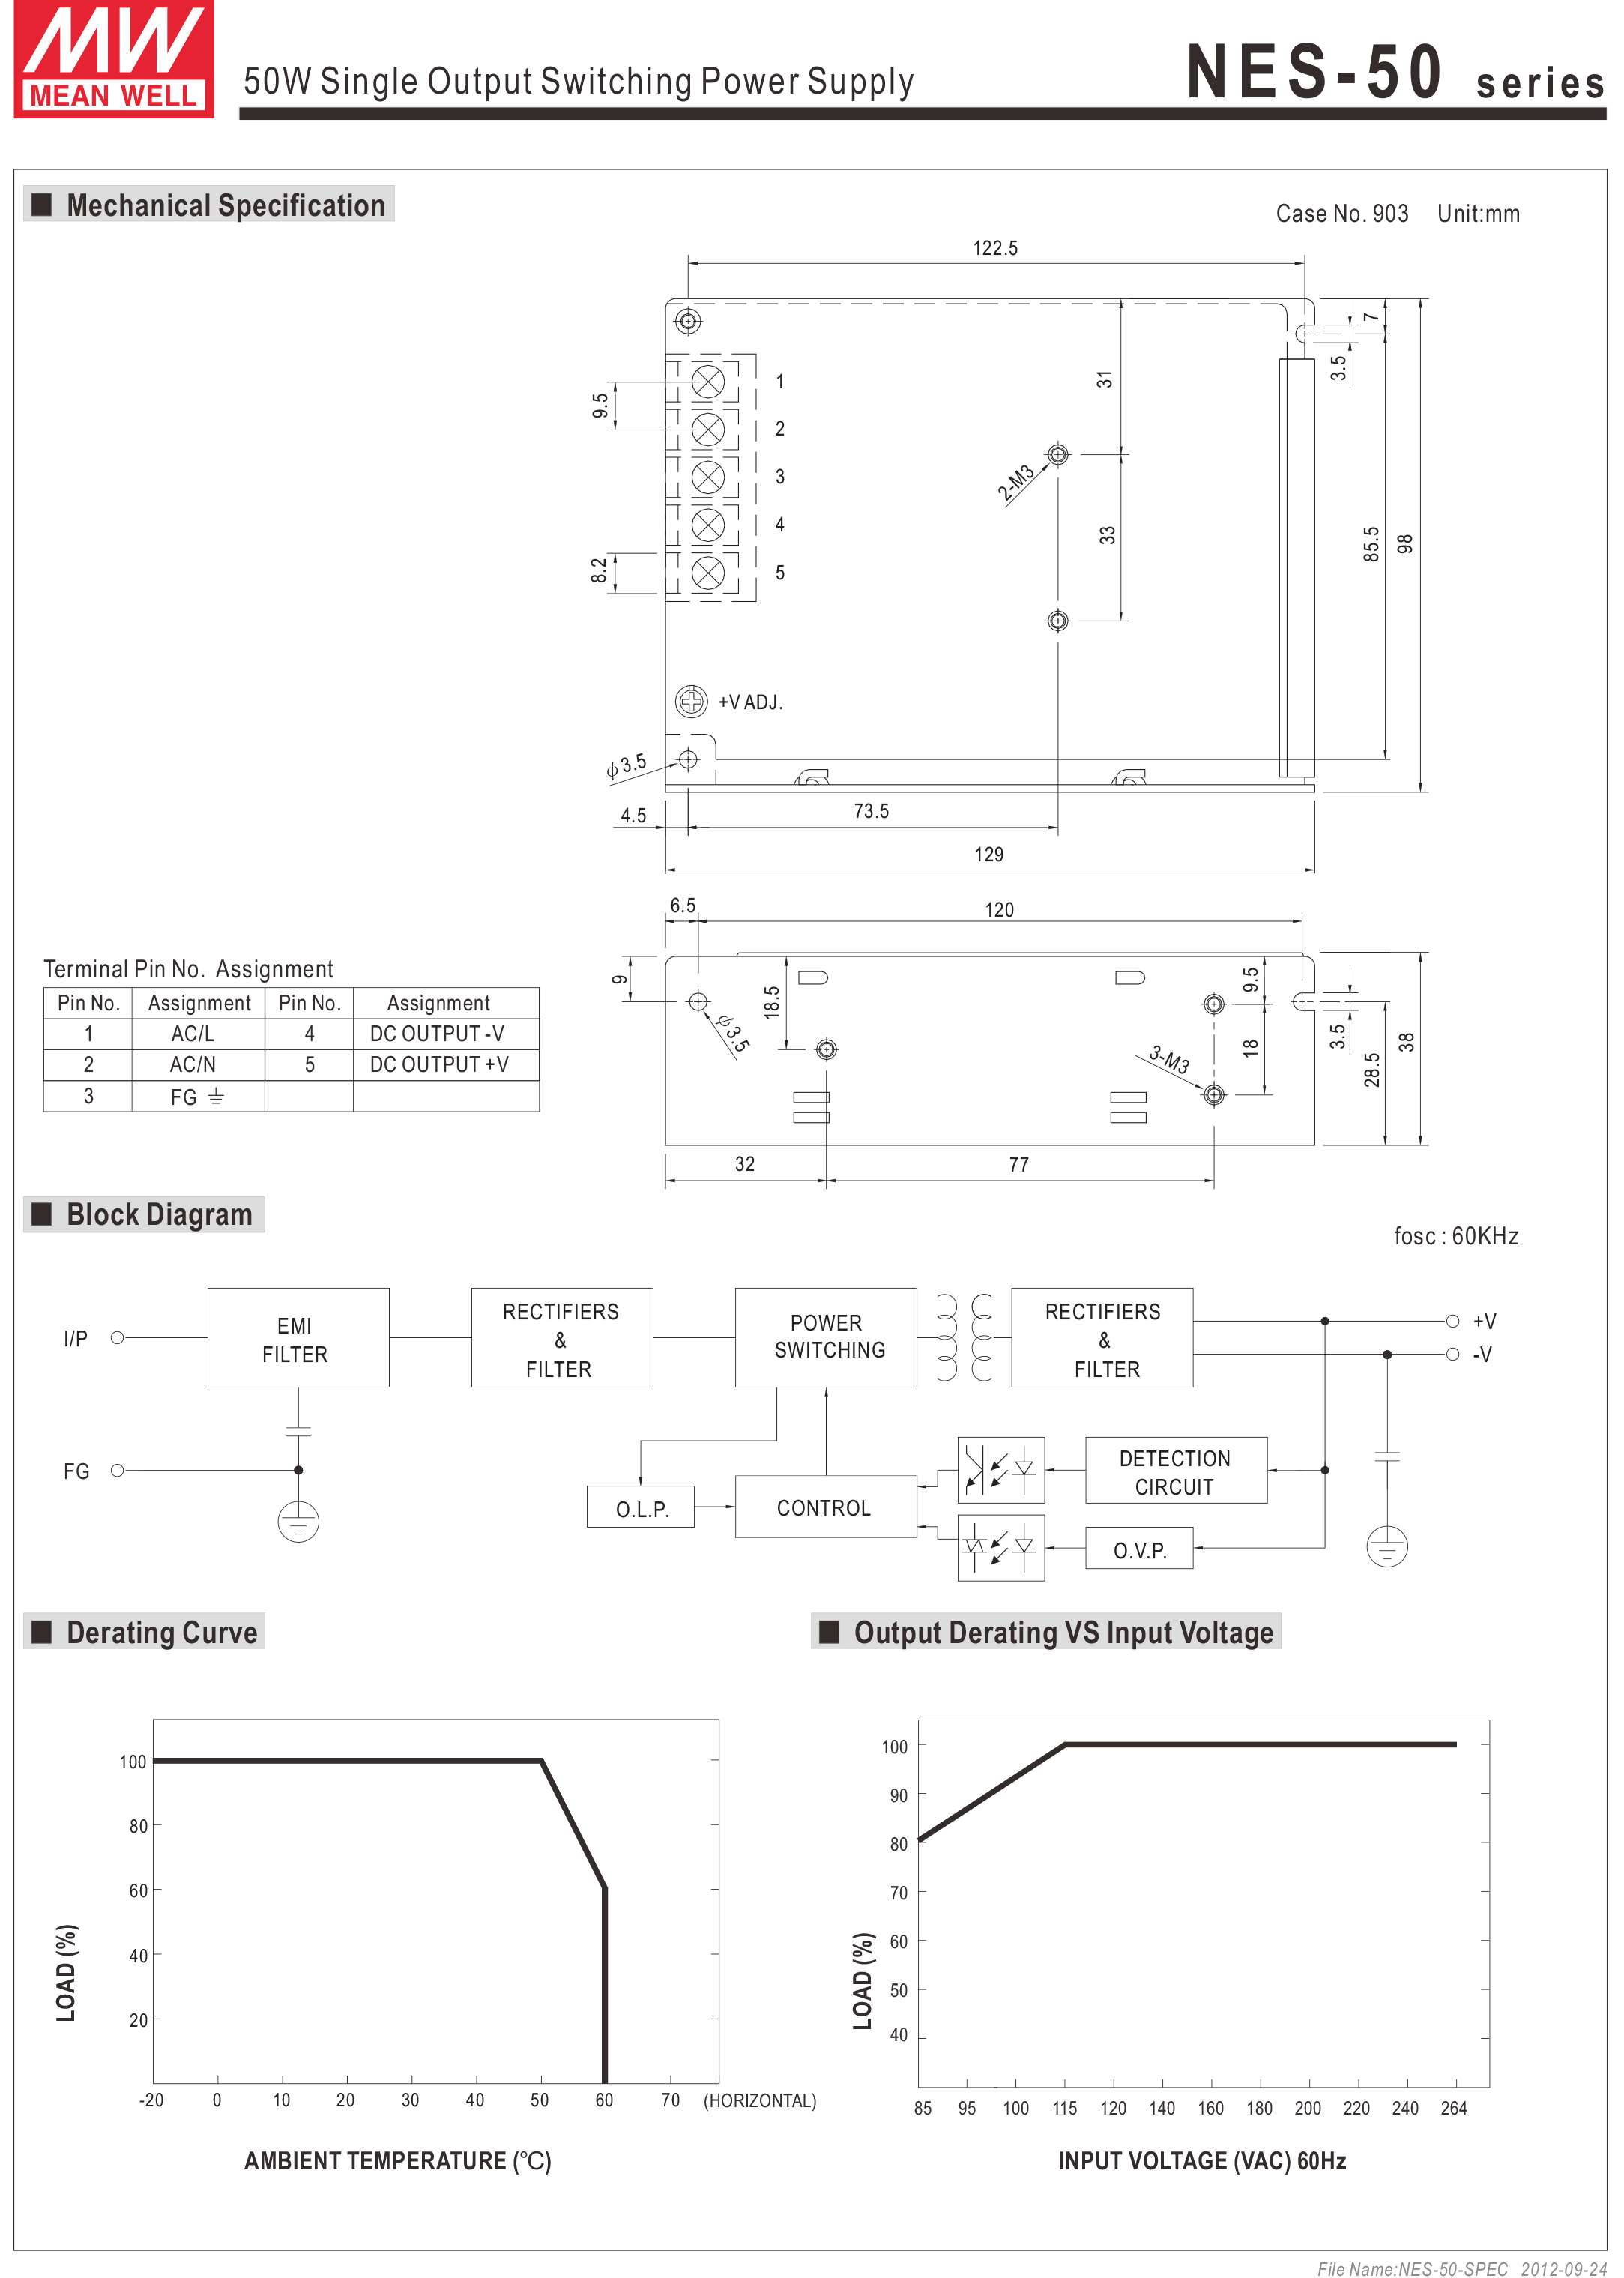 Meanwell Power Supply Wiring Diagram. Fsp Power Supply Wiring ... on